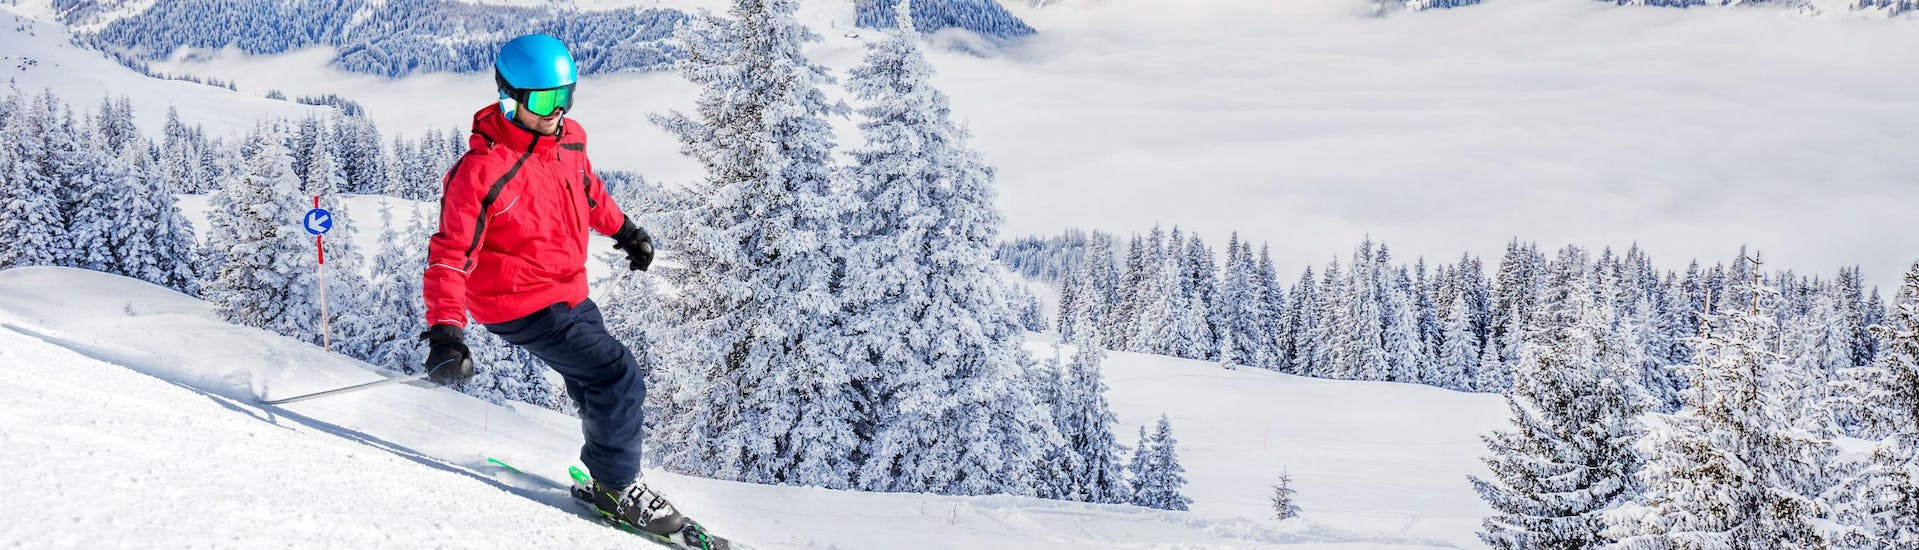 A skier is skiing down a ski slope with fresh powder snow and a stunning view of the surrounding Alps in the Kitzbühel area, where local ski schools offer a variety of ski lessons for anyone who wants to learn to ski.